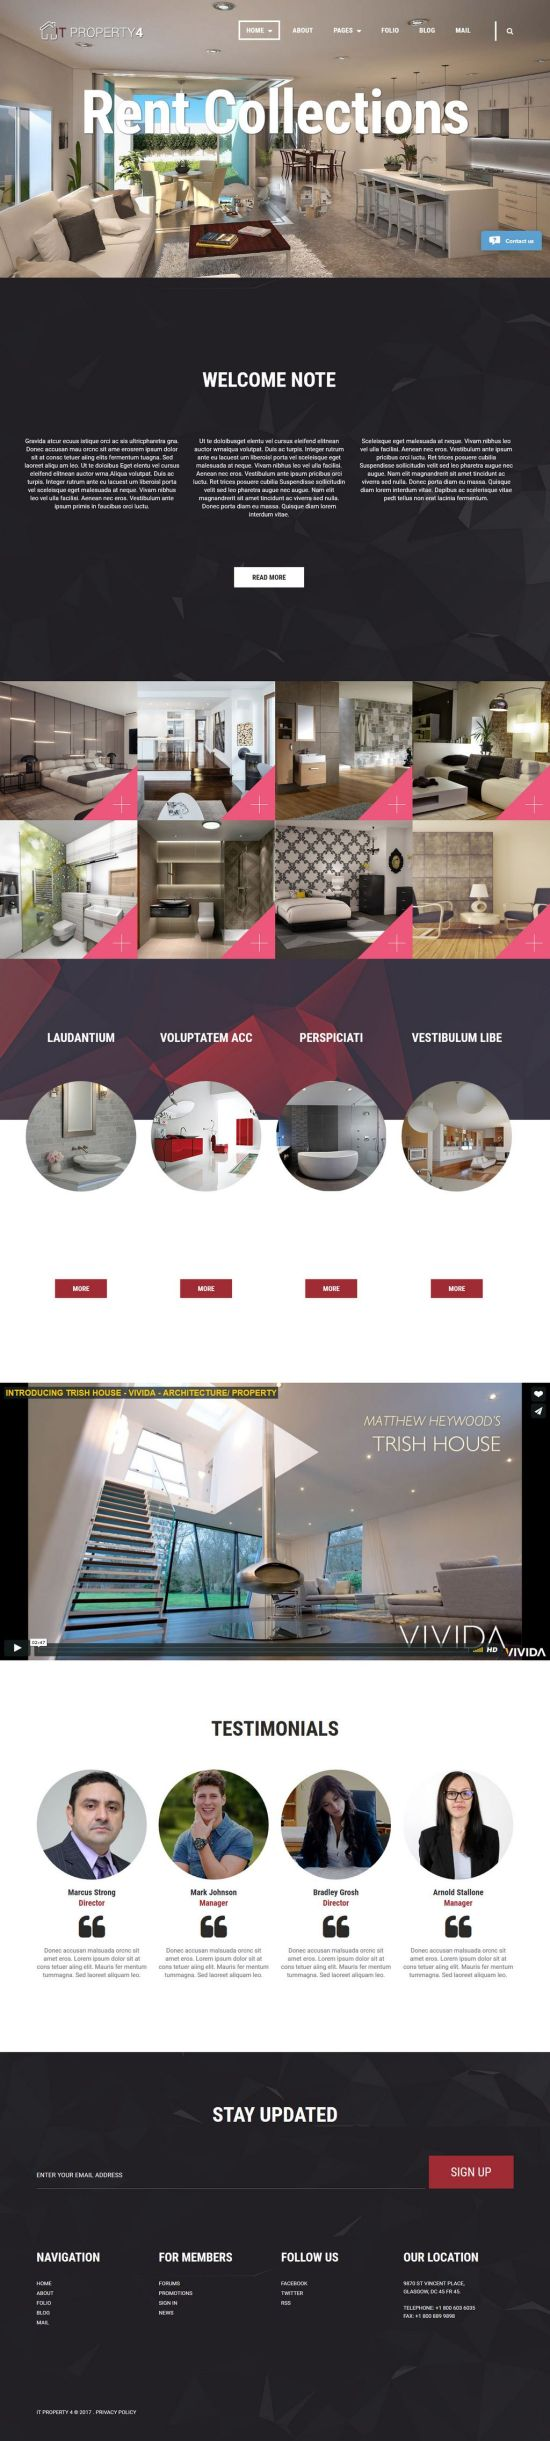 IT Property Joomla Template